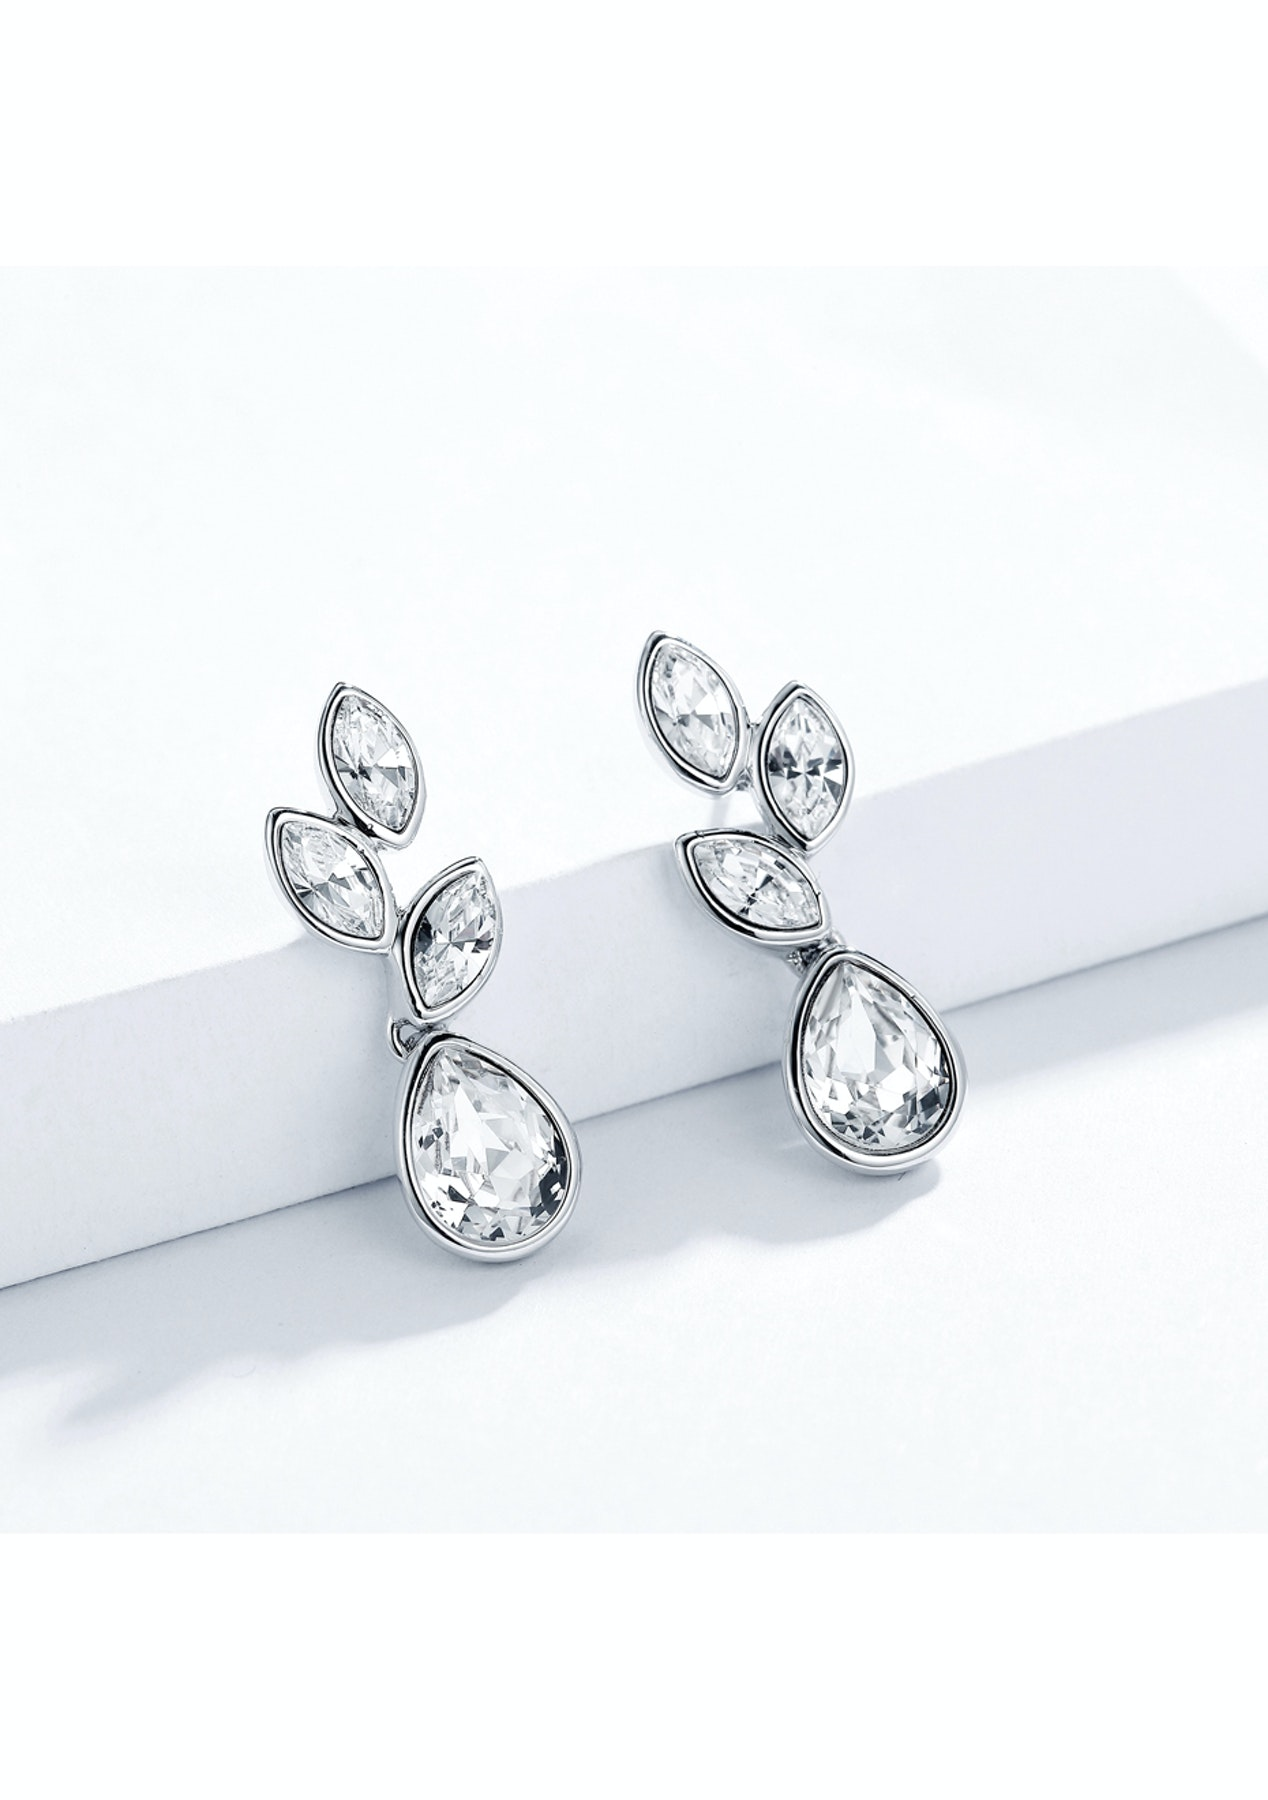 8657c42c23fea Krystal Cotoure - Tranquility Drop Earrings with Swarovski Crystals Bridal  Wedding WGP MYJS